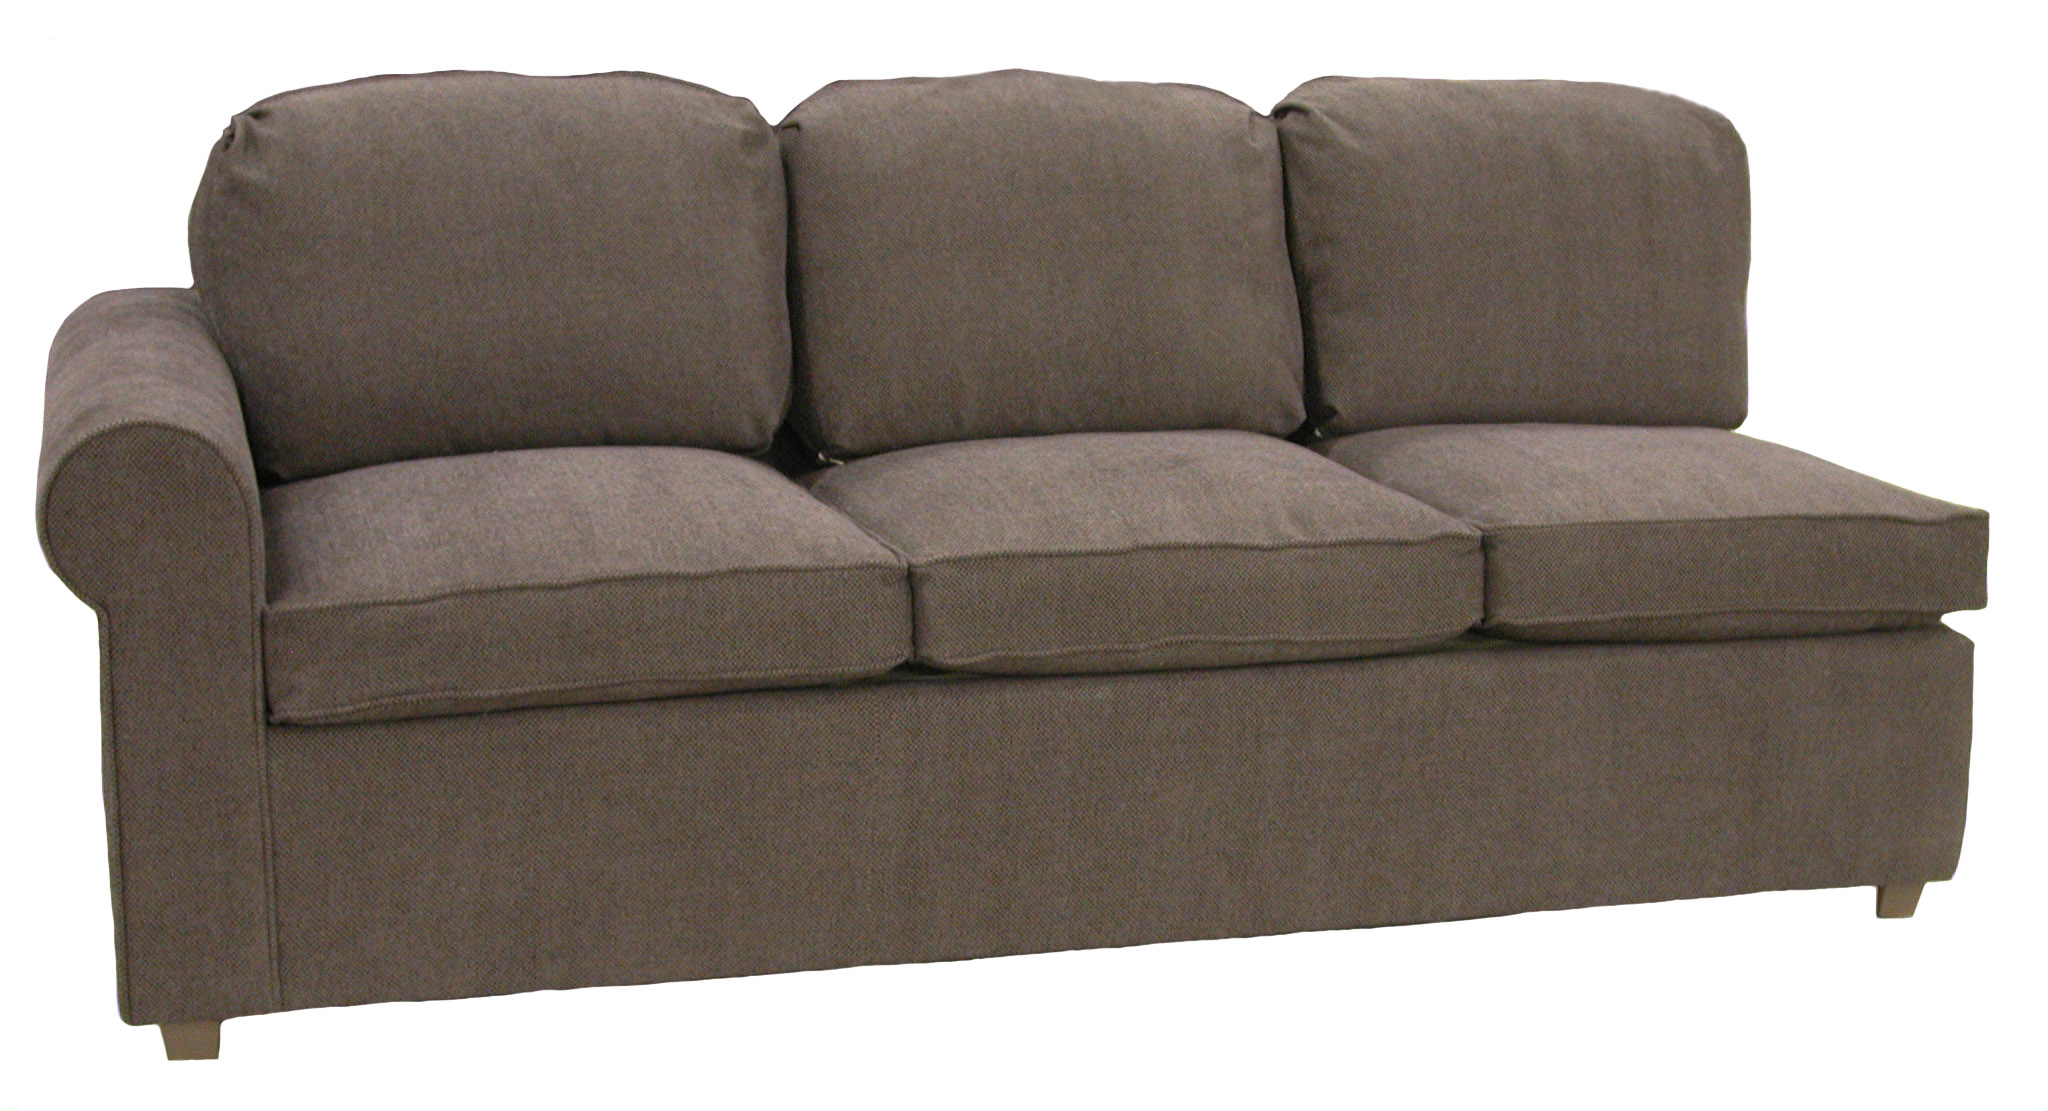 Roth 1-Arm Queen Sleeper Sofa Left Facing